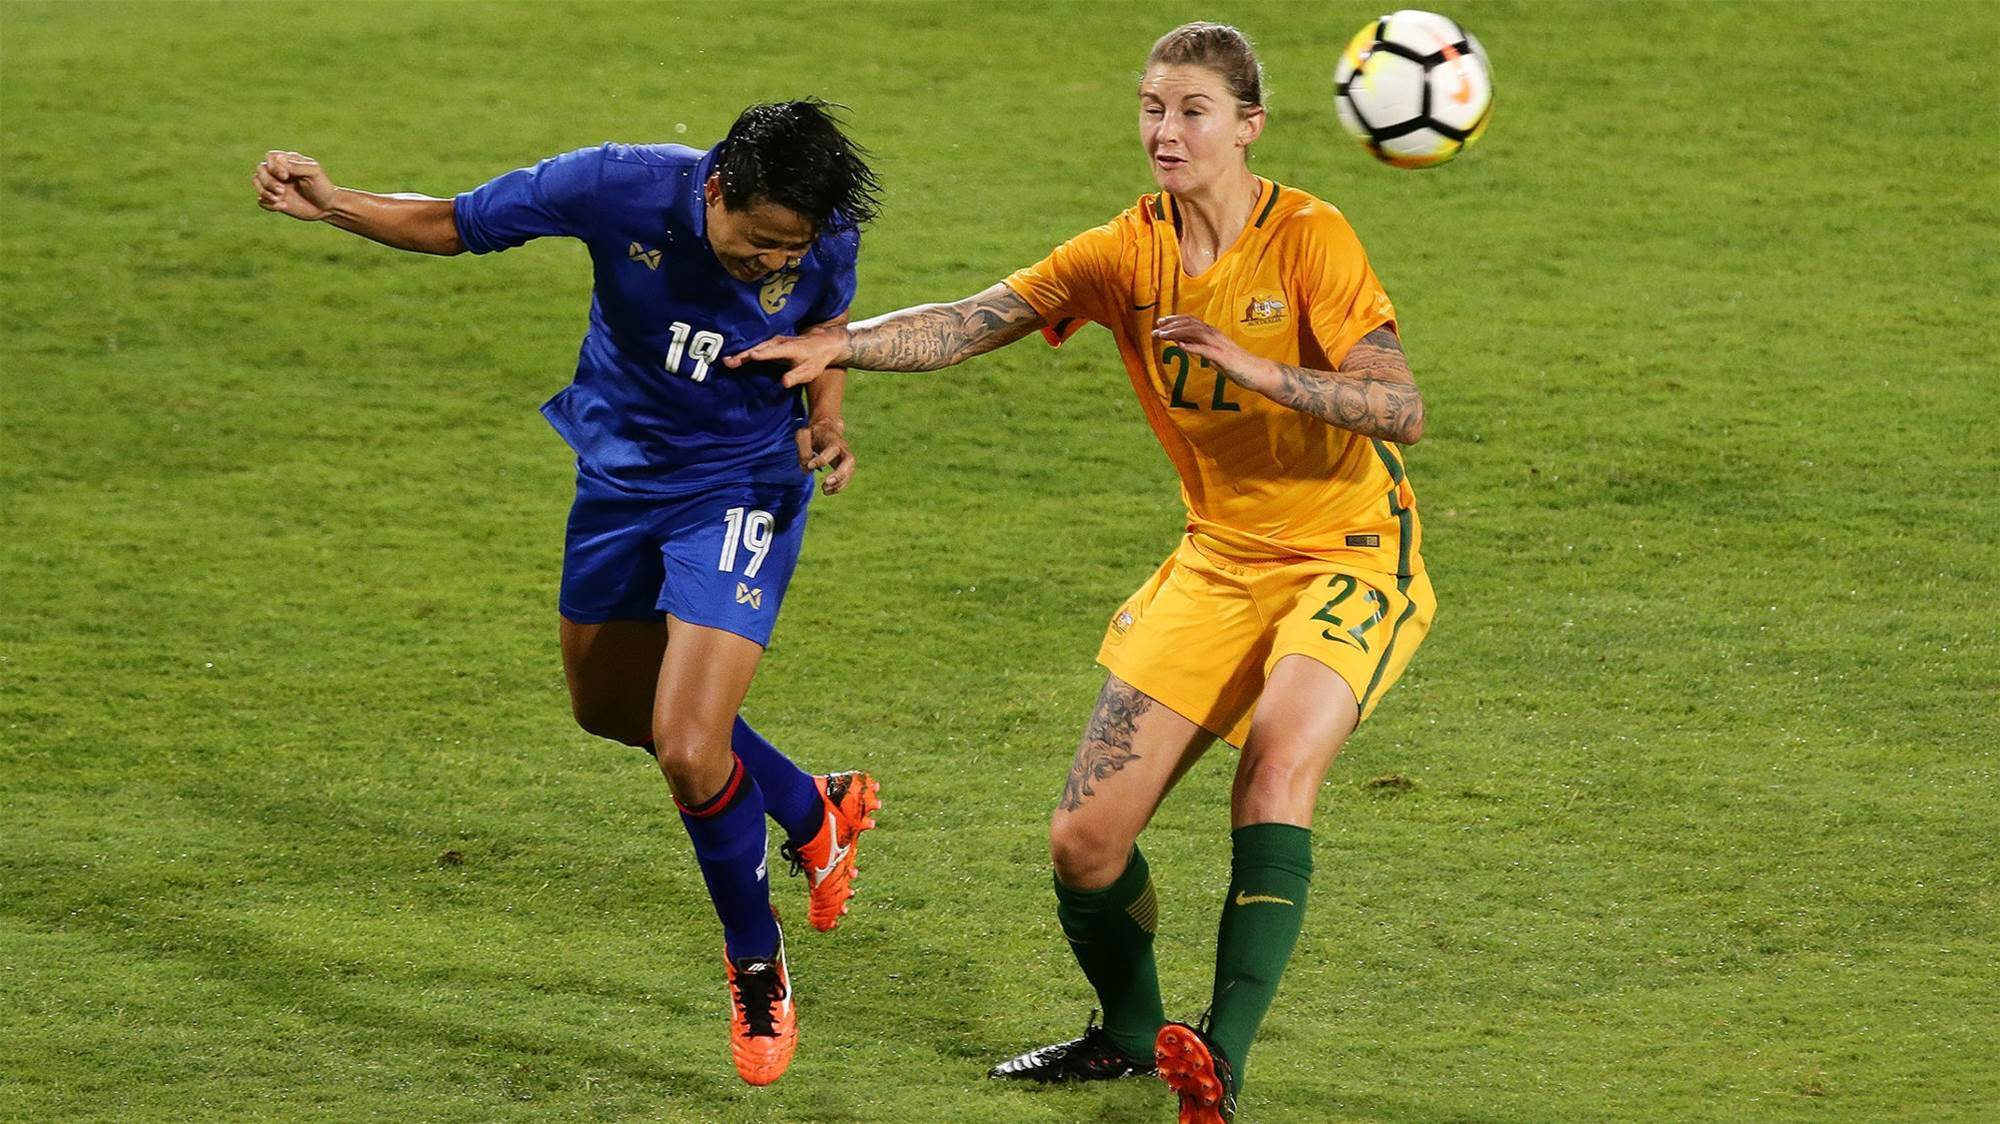 ANALYSIS: Four minute hat-trick sees off Young Matildas